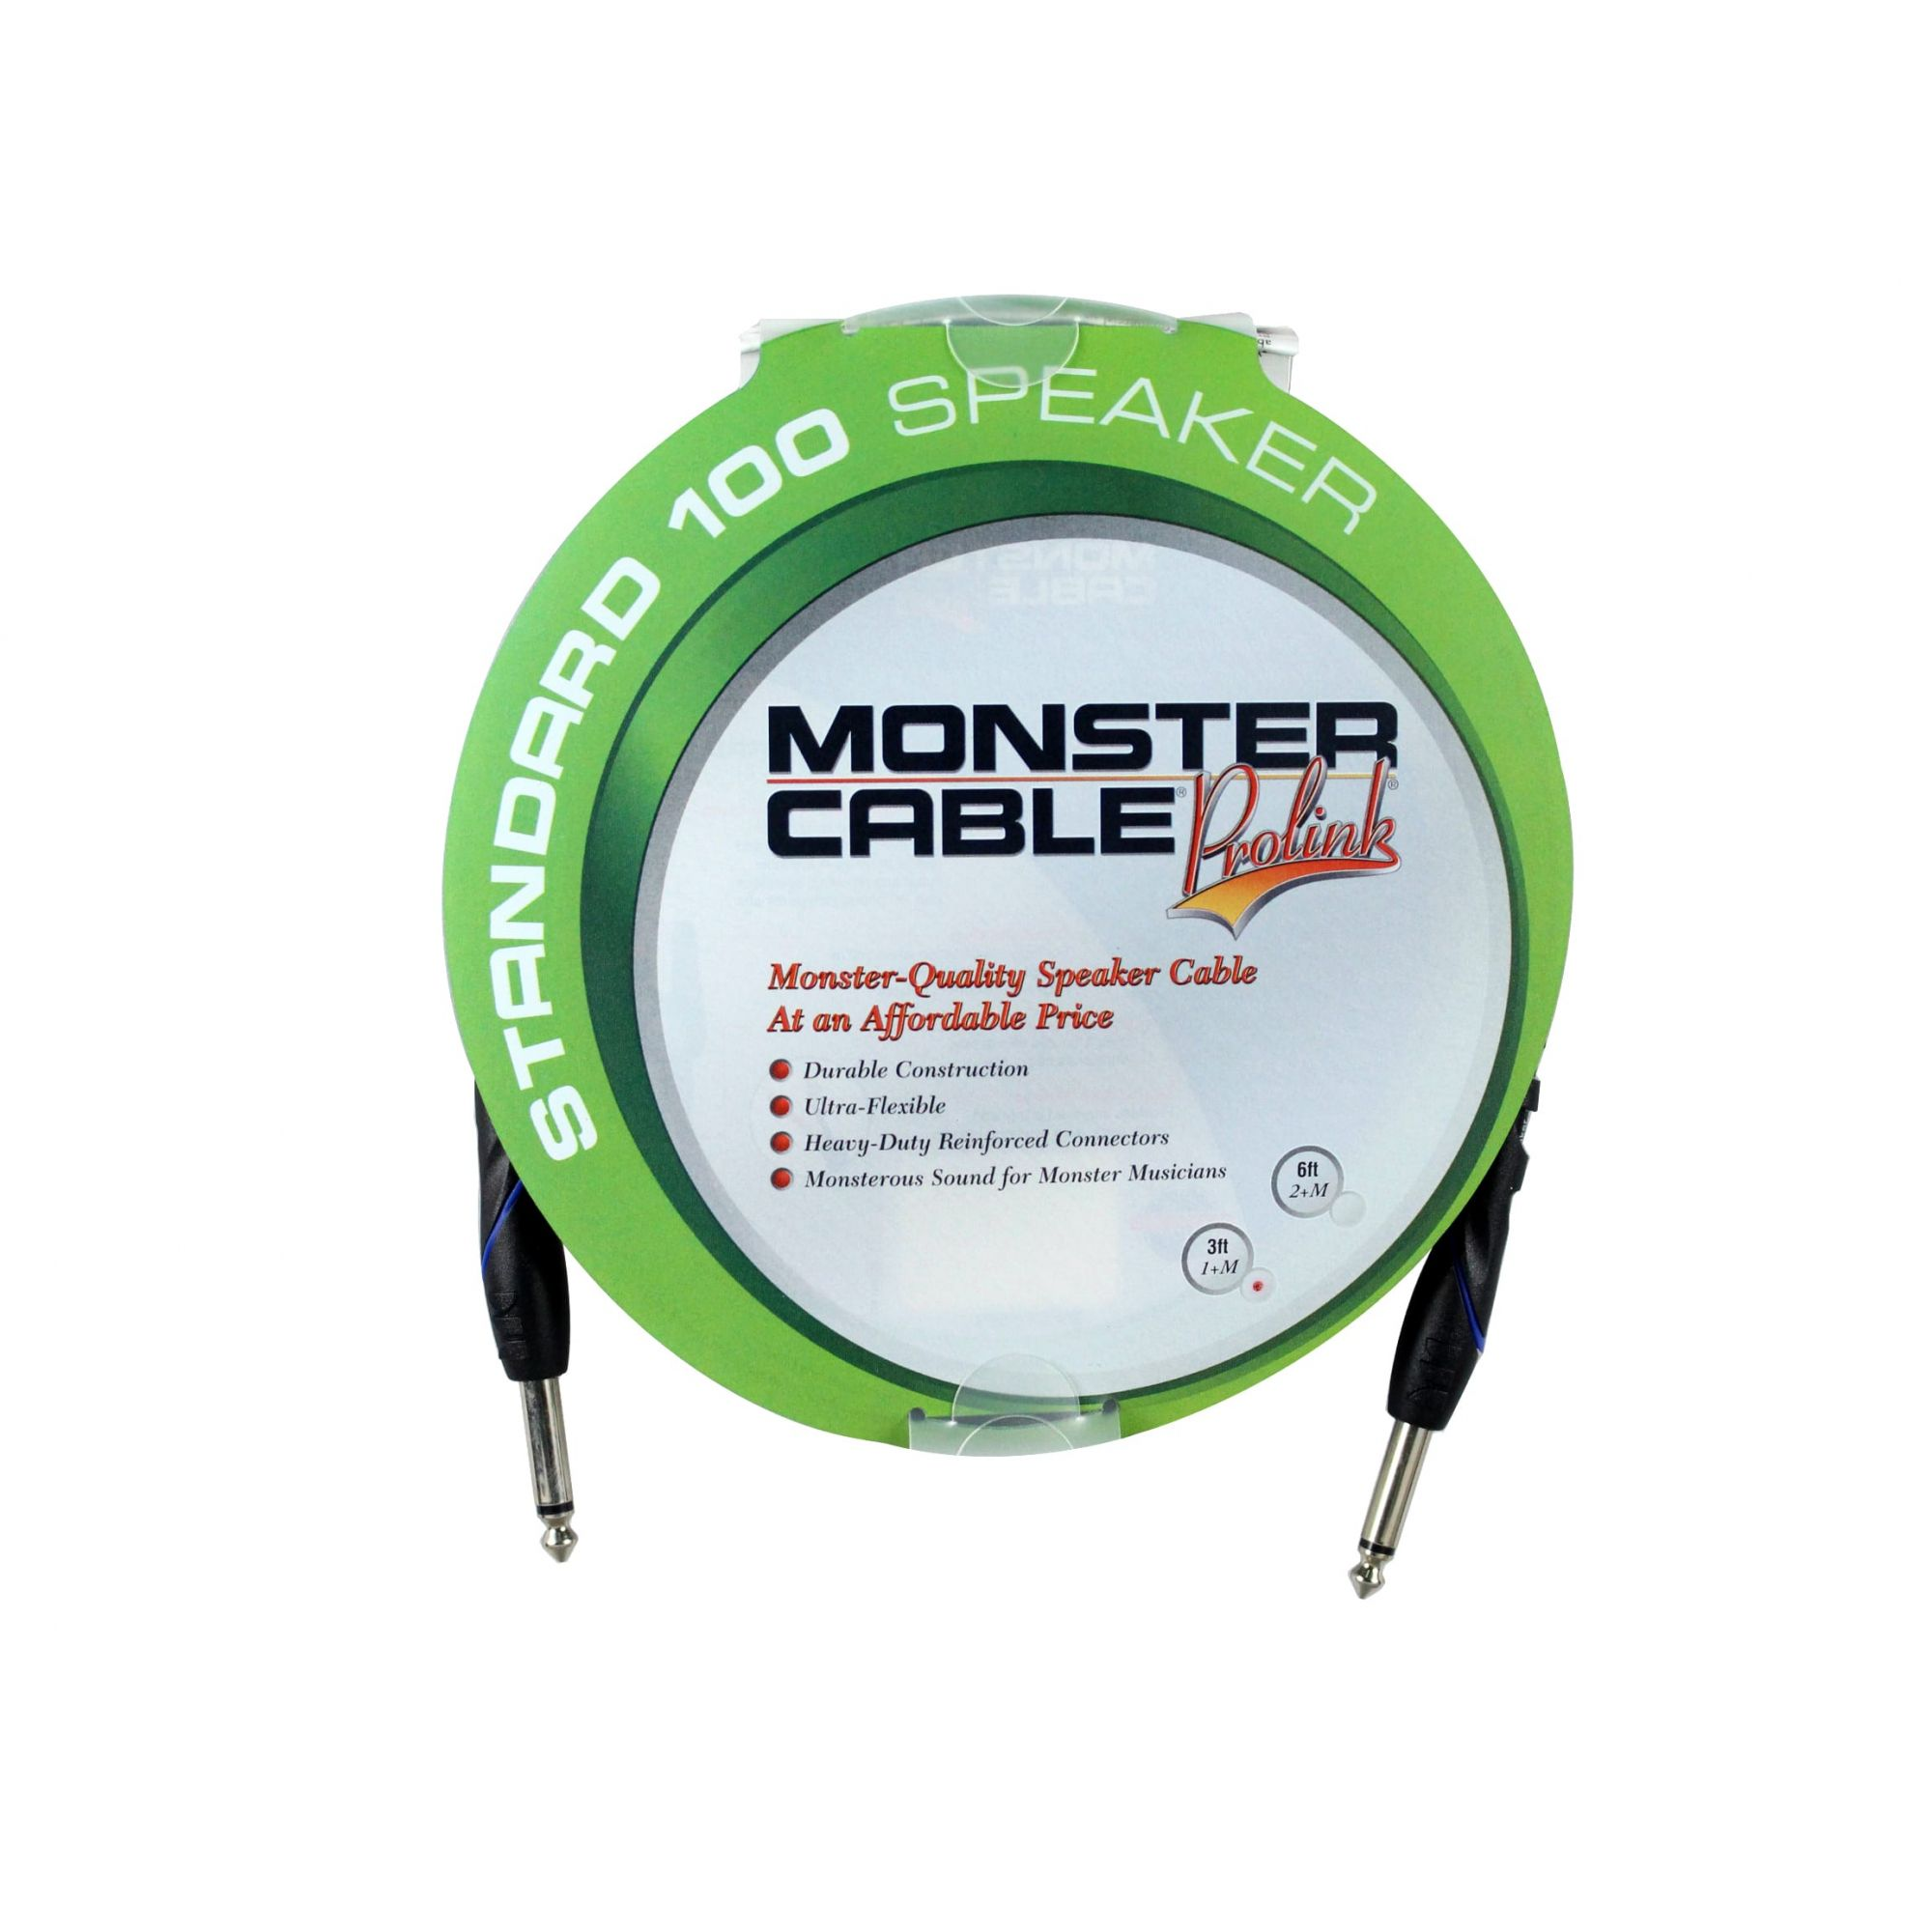 Cabo - Caixa P10 1m Monster Cable S100-S-3